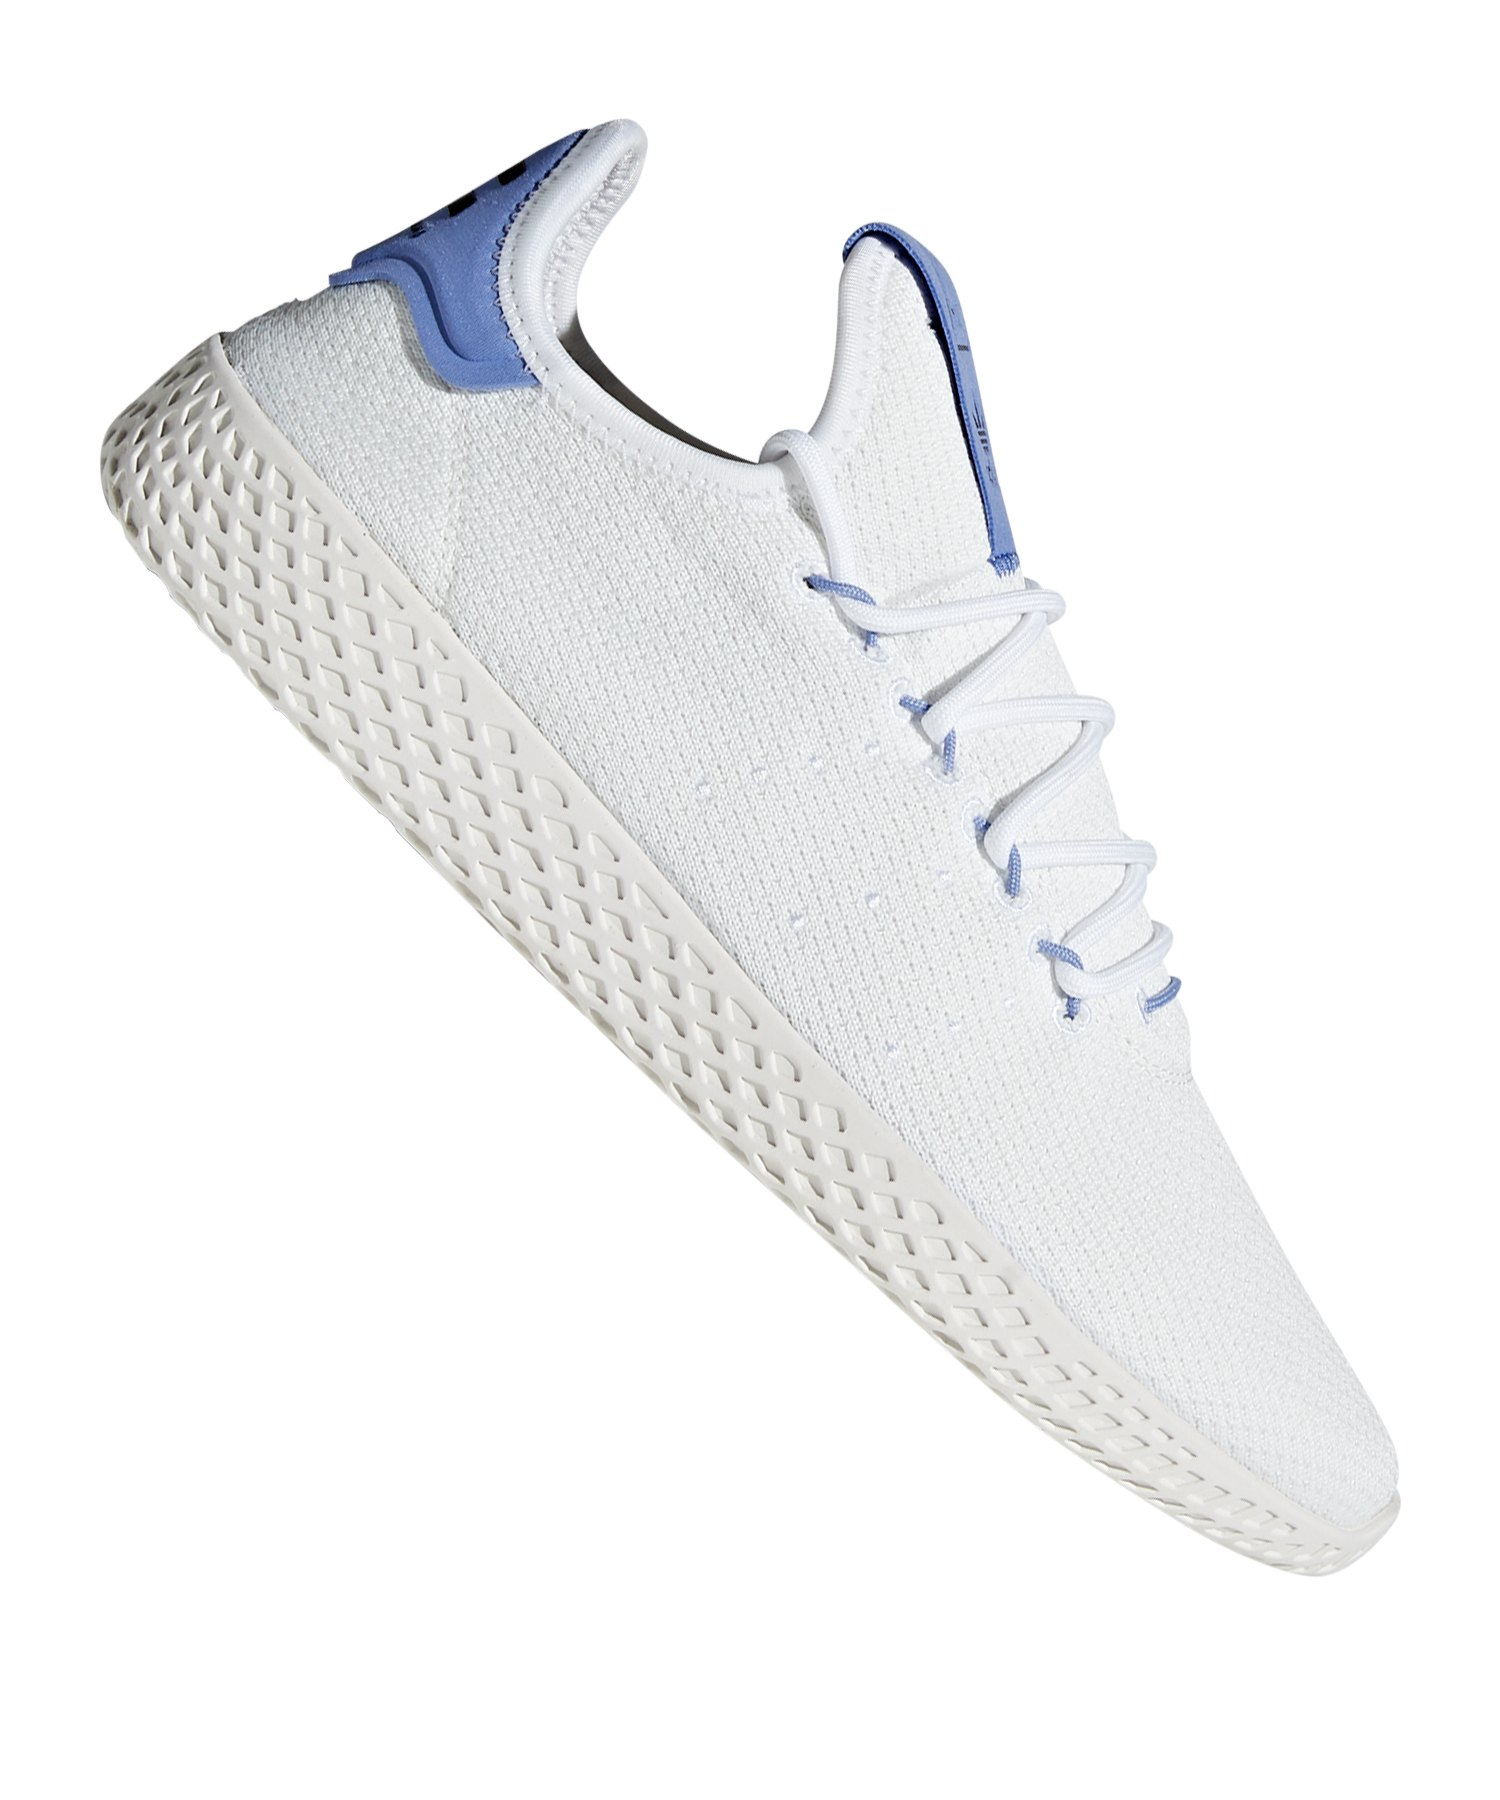 adidas Originals PW Tennis HU Sneaker Weiss Blau